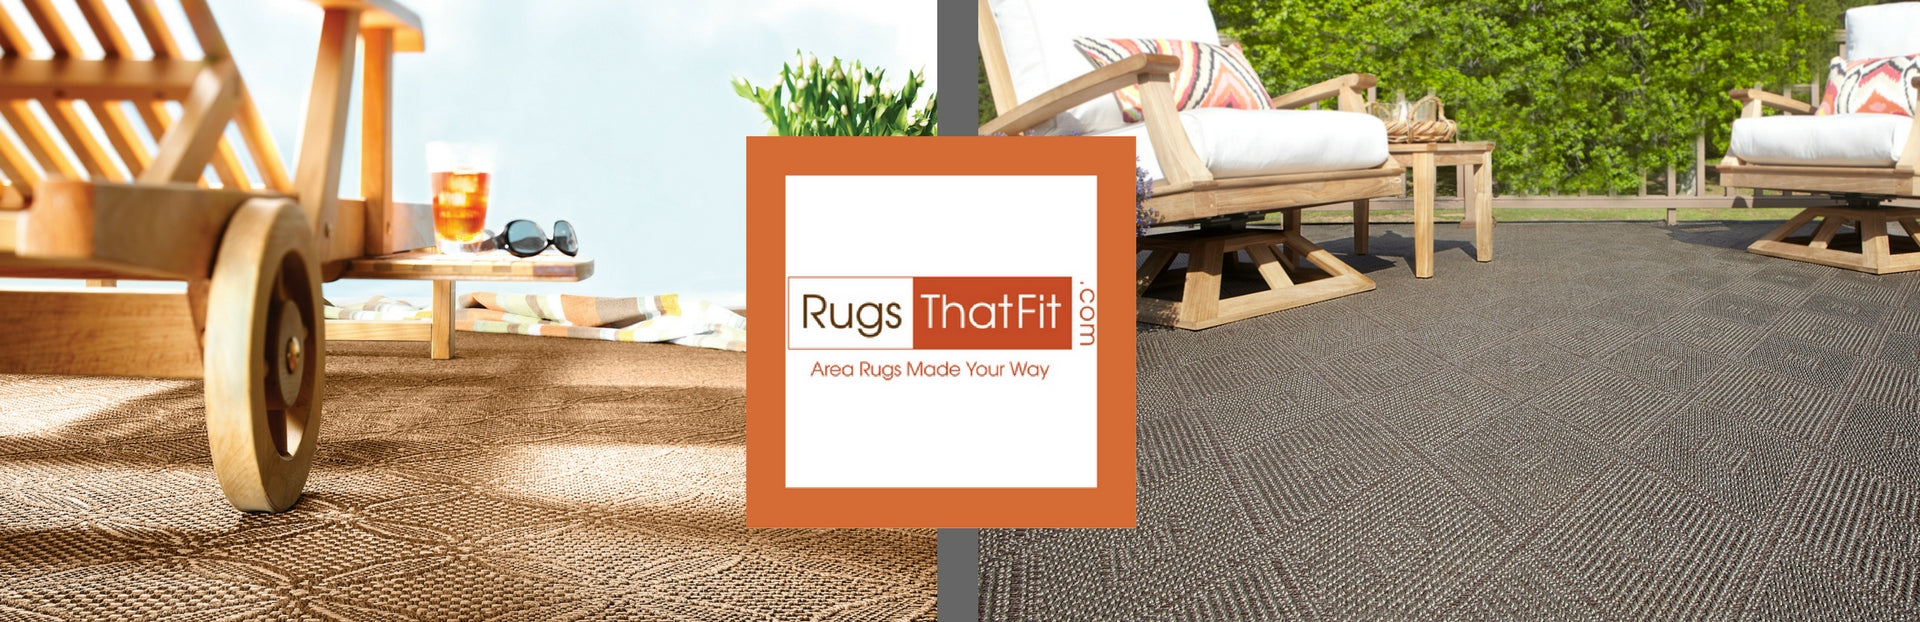 Rugsthatfit Outdoor Rugs